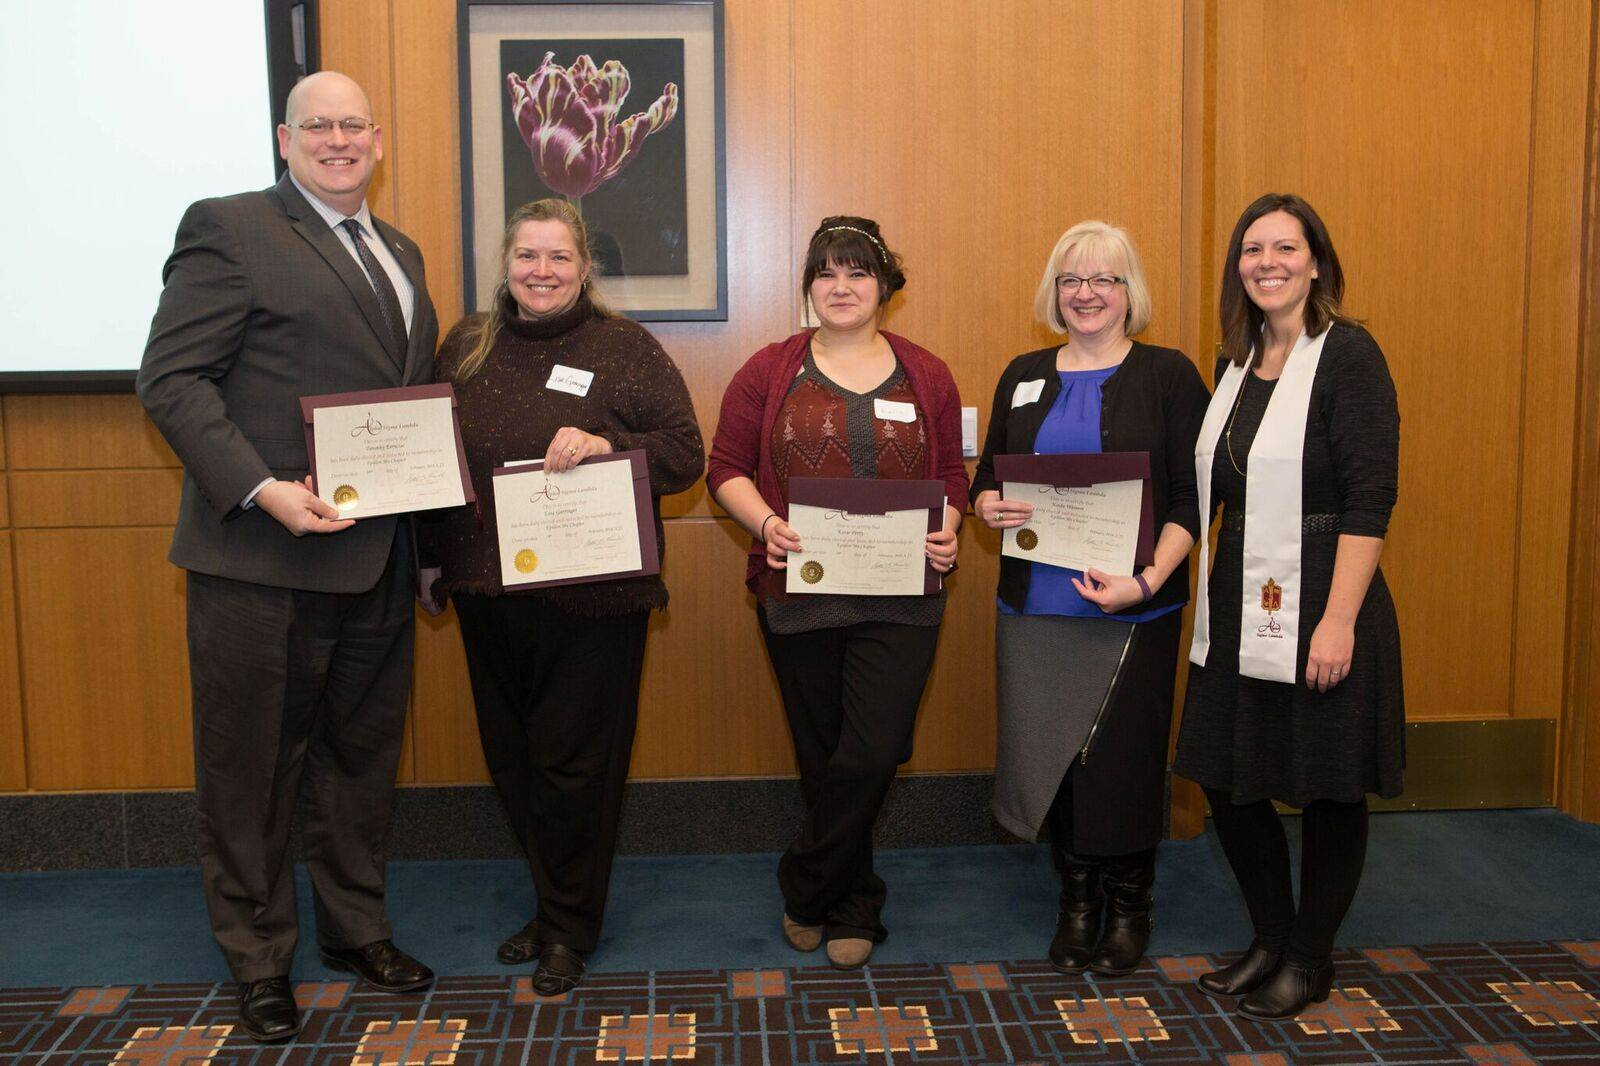 Students inducted into honorary society